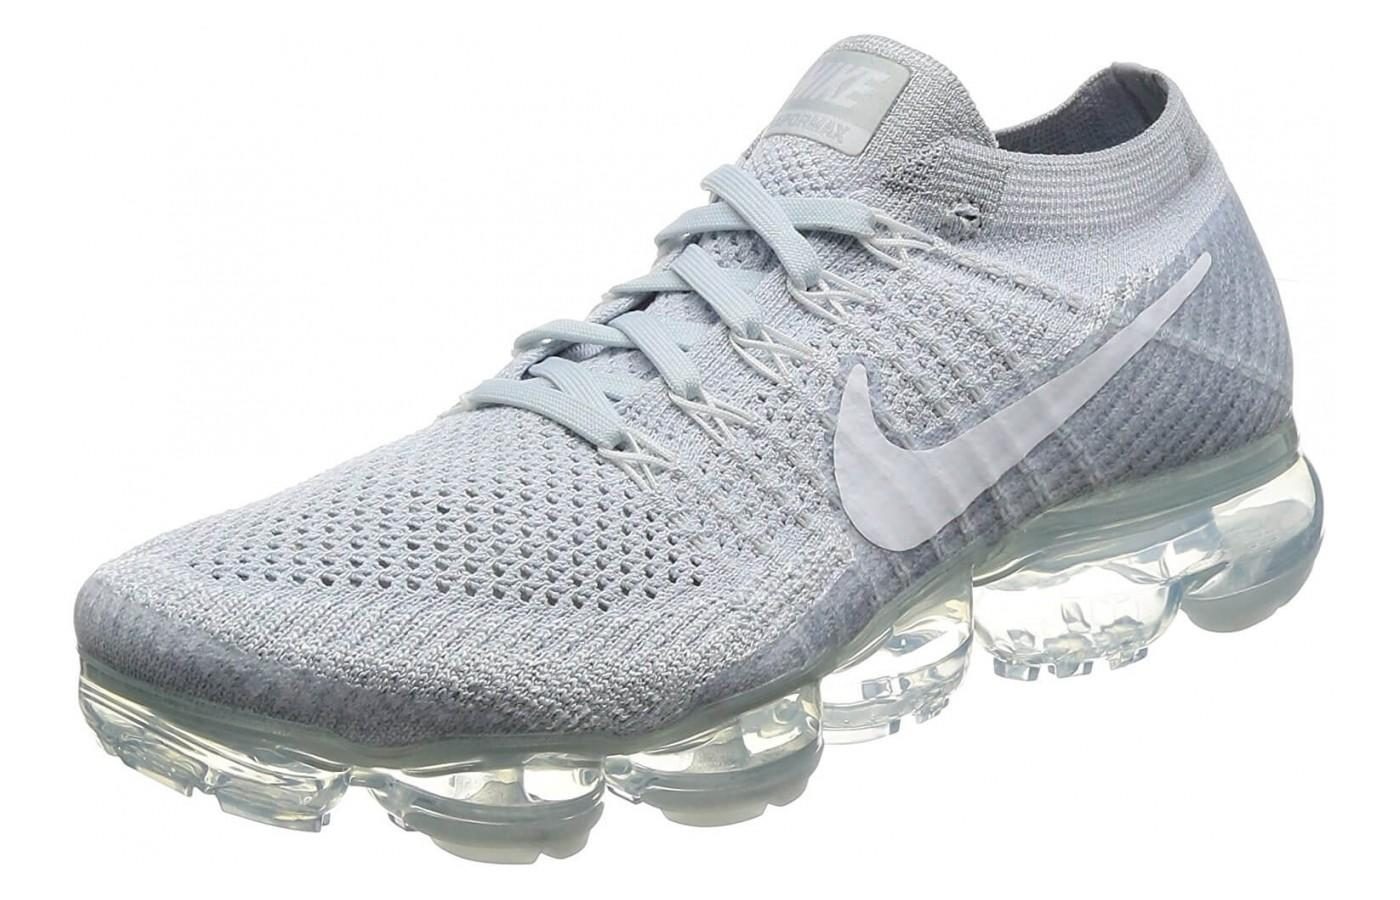 premium selection e9ca6 e7081 Nike Air Vapormax Flyknit. The platinum coloring and unique design help  this shoe stand out.